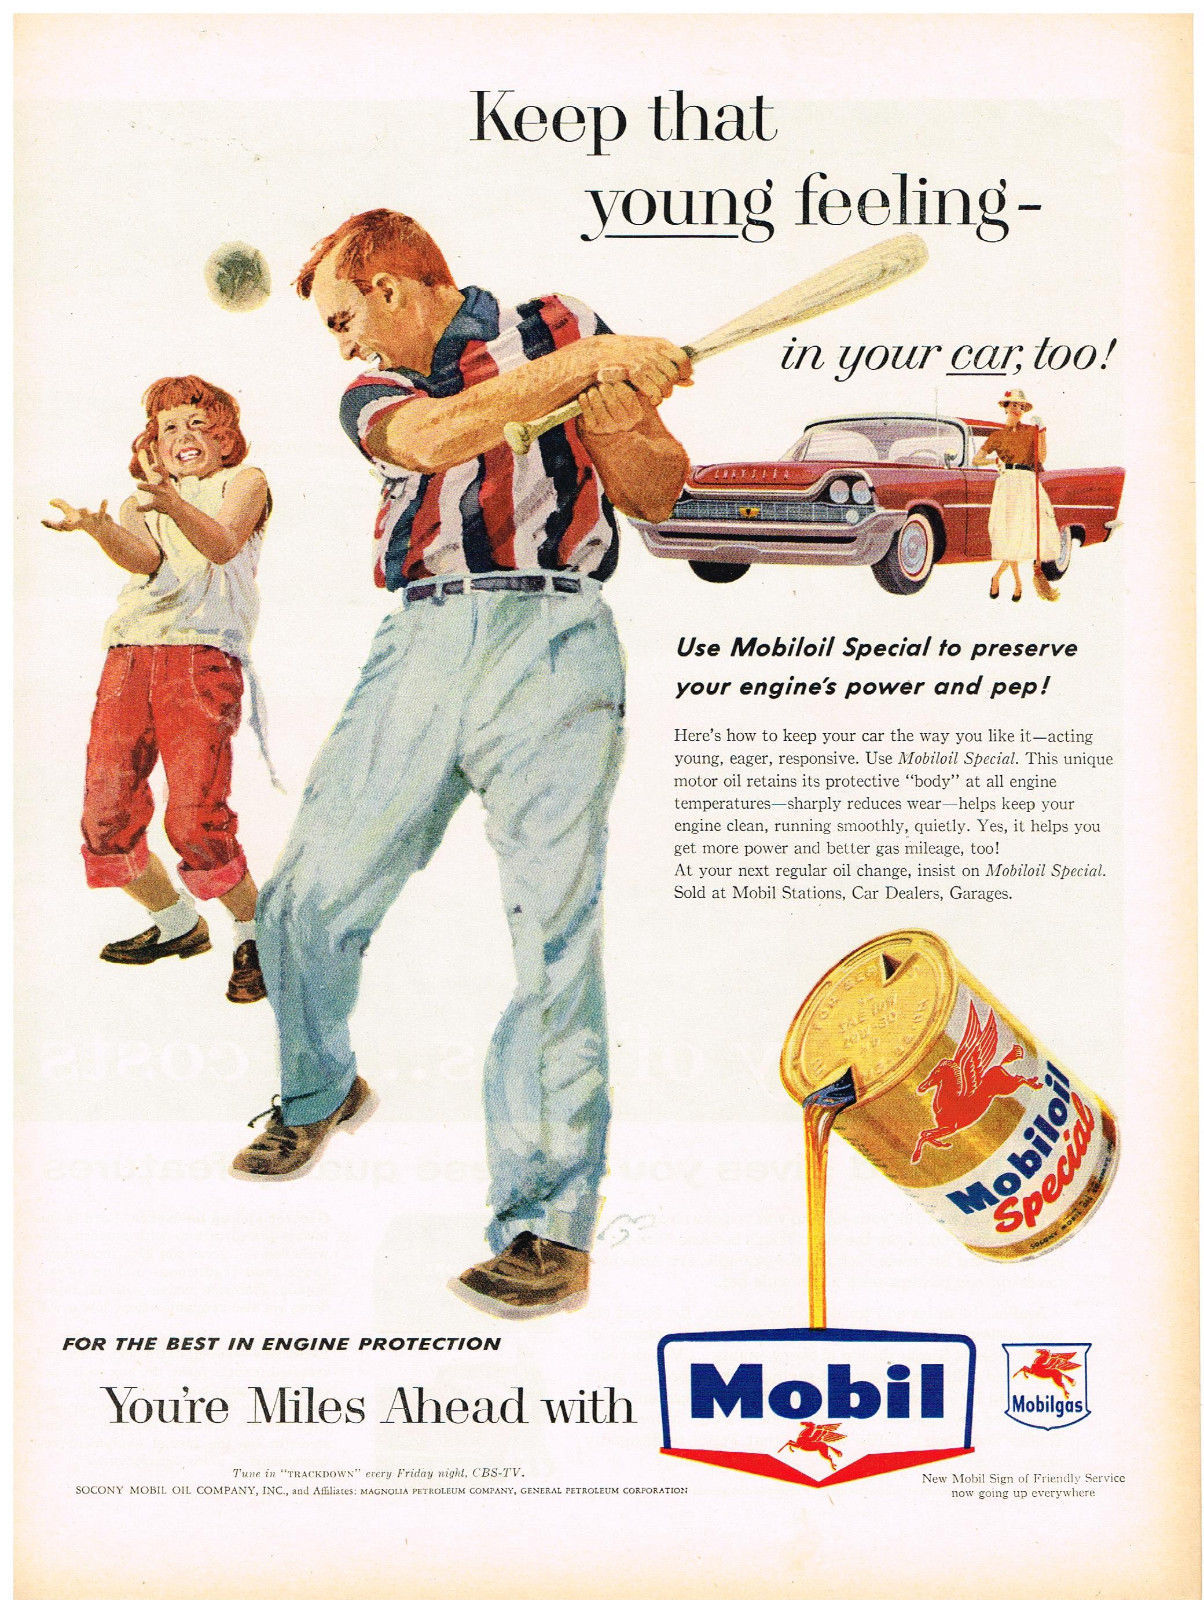 Advertising-print Vintage 1940 Magazine Ad Mobiloil Special Use For The Best Engine Protection Merchandise & Memorabilia